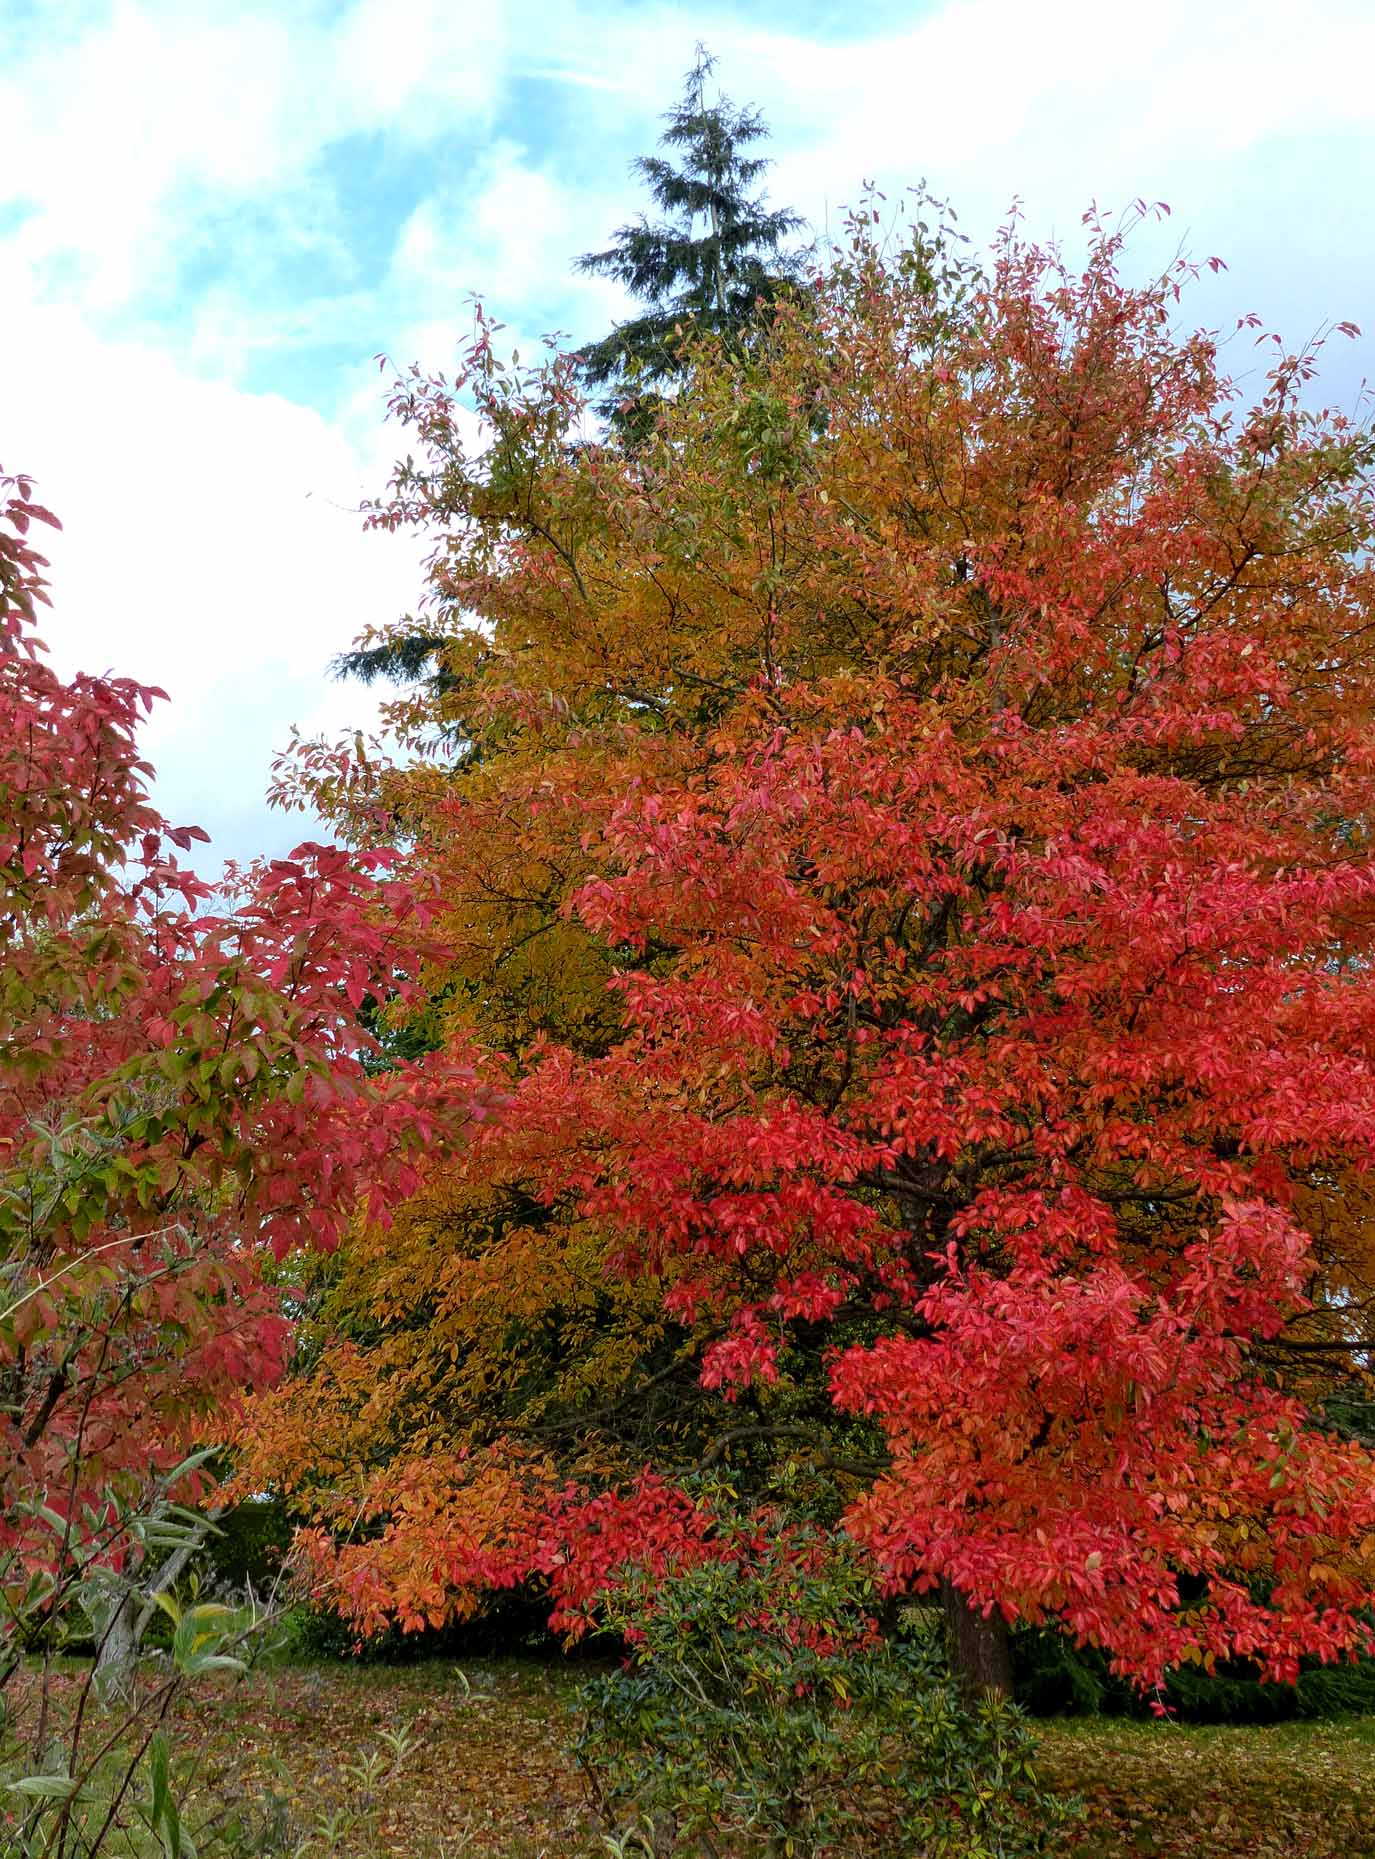 Trees with autumn colours